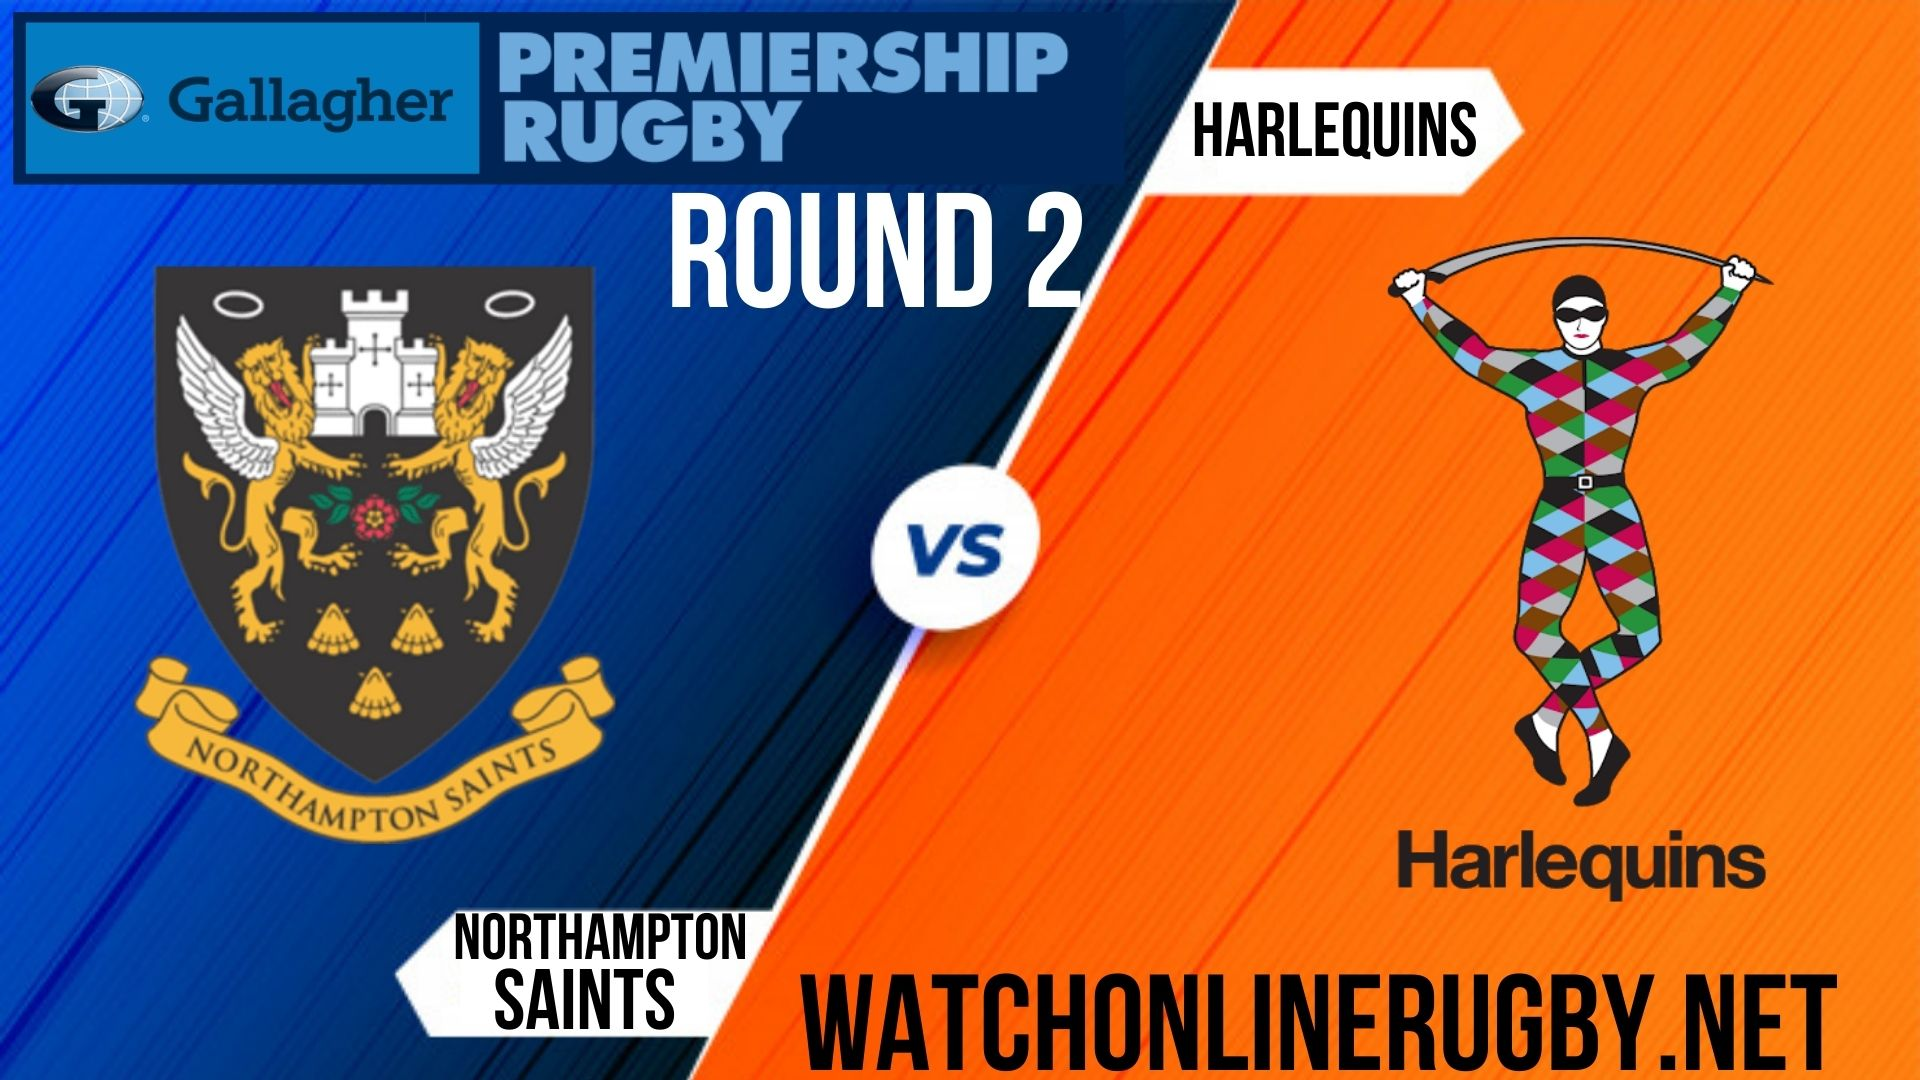 northampton-saints-vs-harlequins-live-streaming